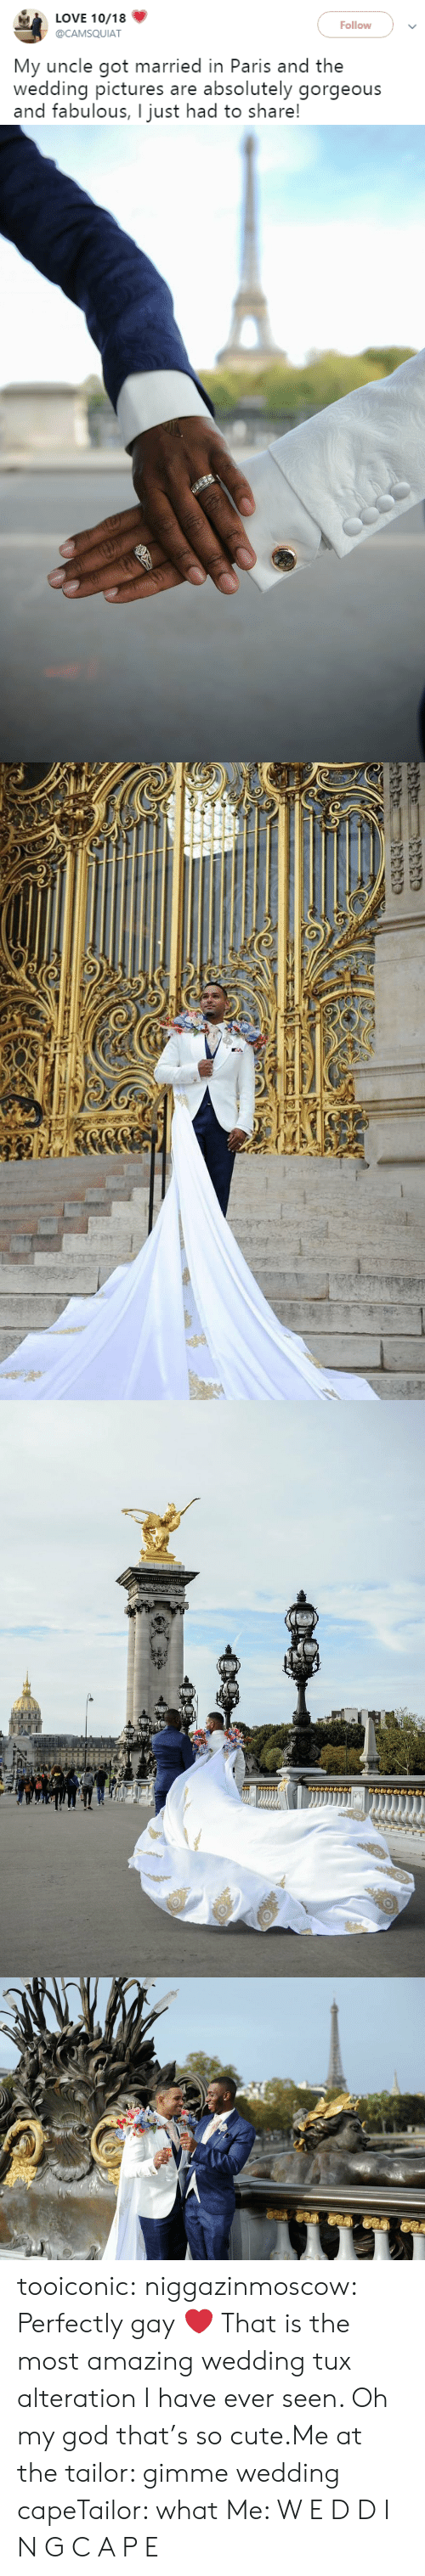 Cute, God, and Love: LOVE 10/18  Follow  @CAMSQUIAT  My uncle got married in Paris and the  wedding pictures are absolutely gorgeous  and fabulous, I just had to share! tooiconic: niggazinmoscow: Perfectly gay❤️  That is the most amazing wedding tux alteration I have ever seen.    Oh my god that's so cute.Me at the tailor: gimme wedding capeTailor: what Me: W E D D I N G  C A P E